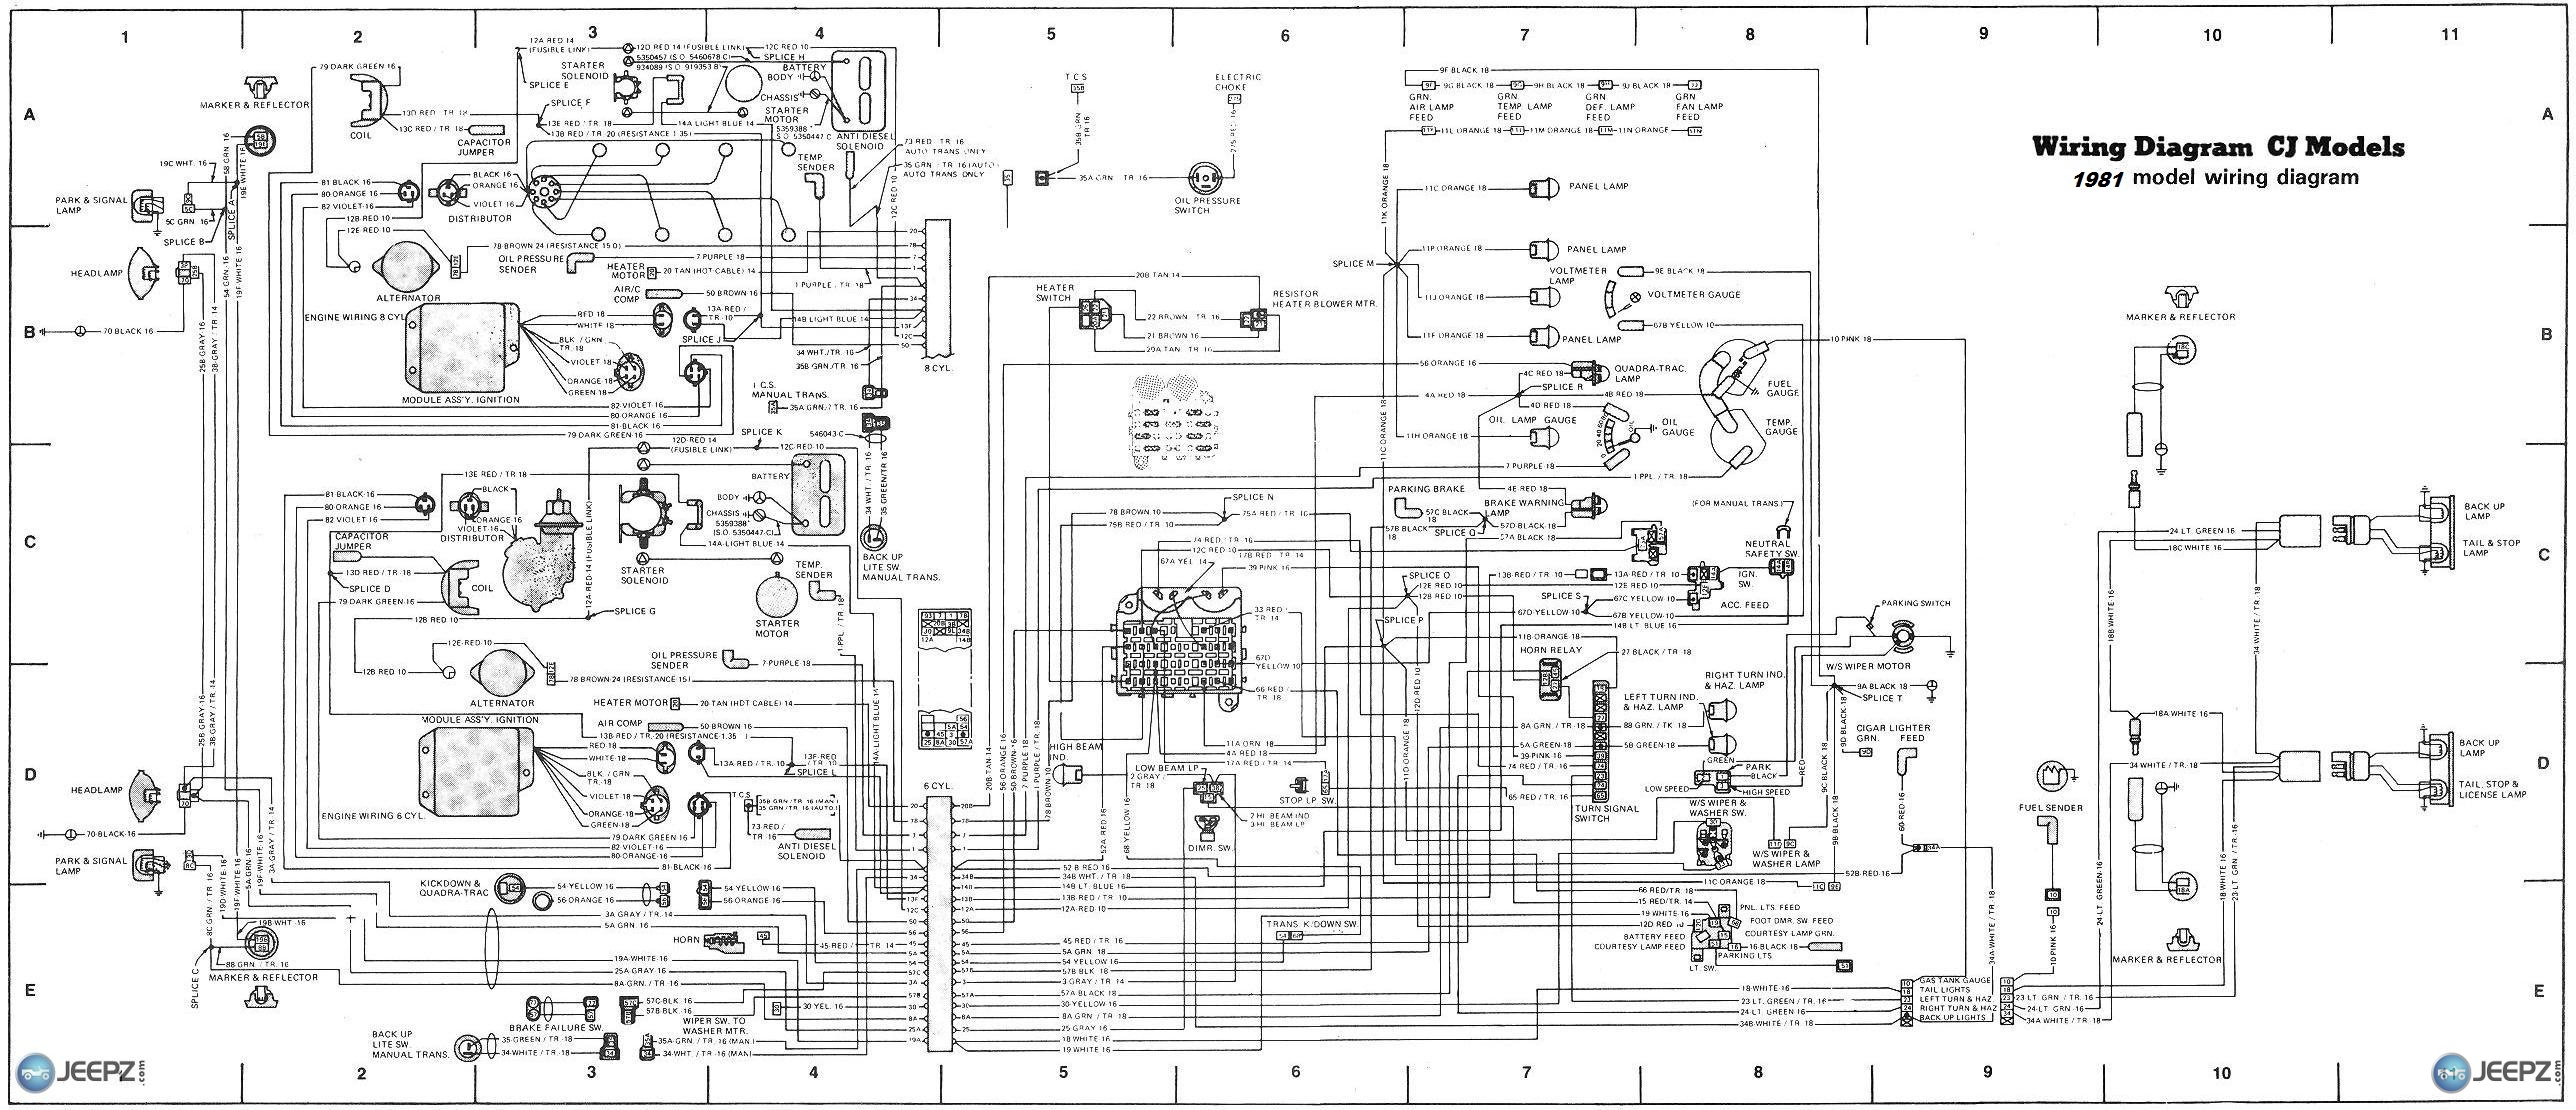 7993d1301845049 cj 7 wire diagram cj wiring diagram 1981 resized665 2c2876ssld1 opel corsa b [ 2576 x 1110 Pixel ]